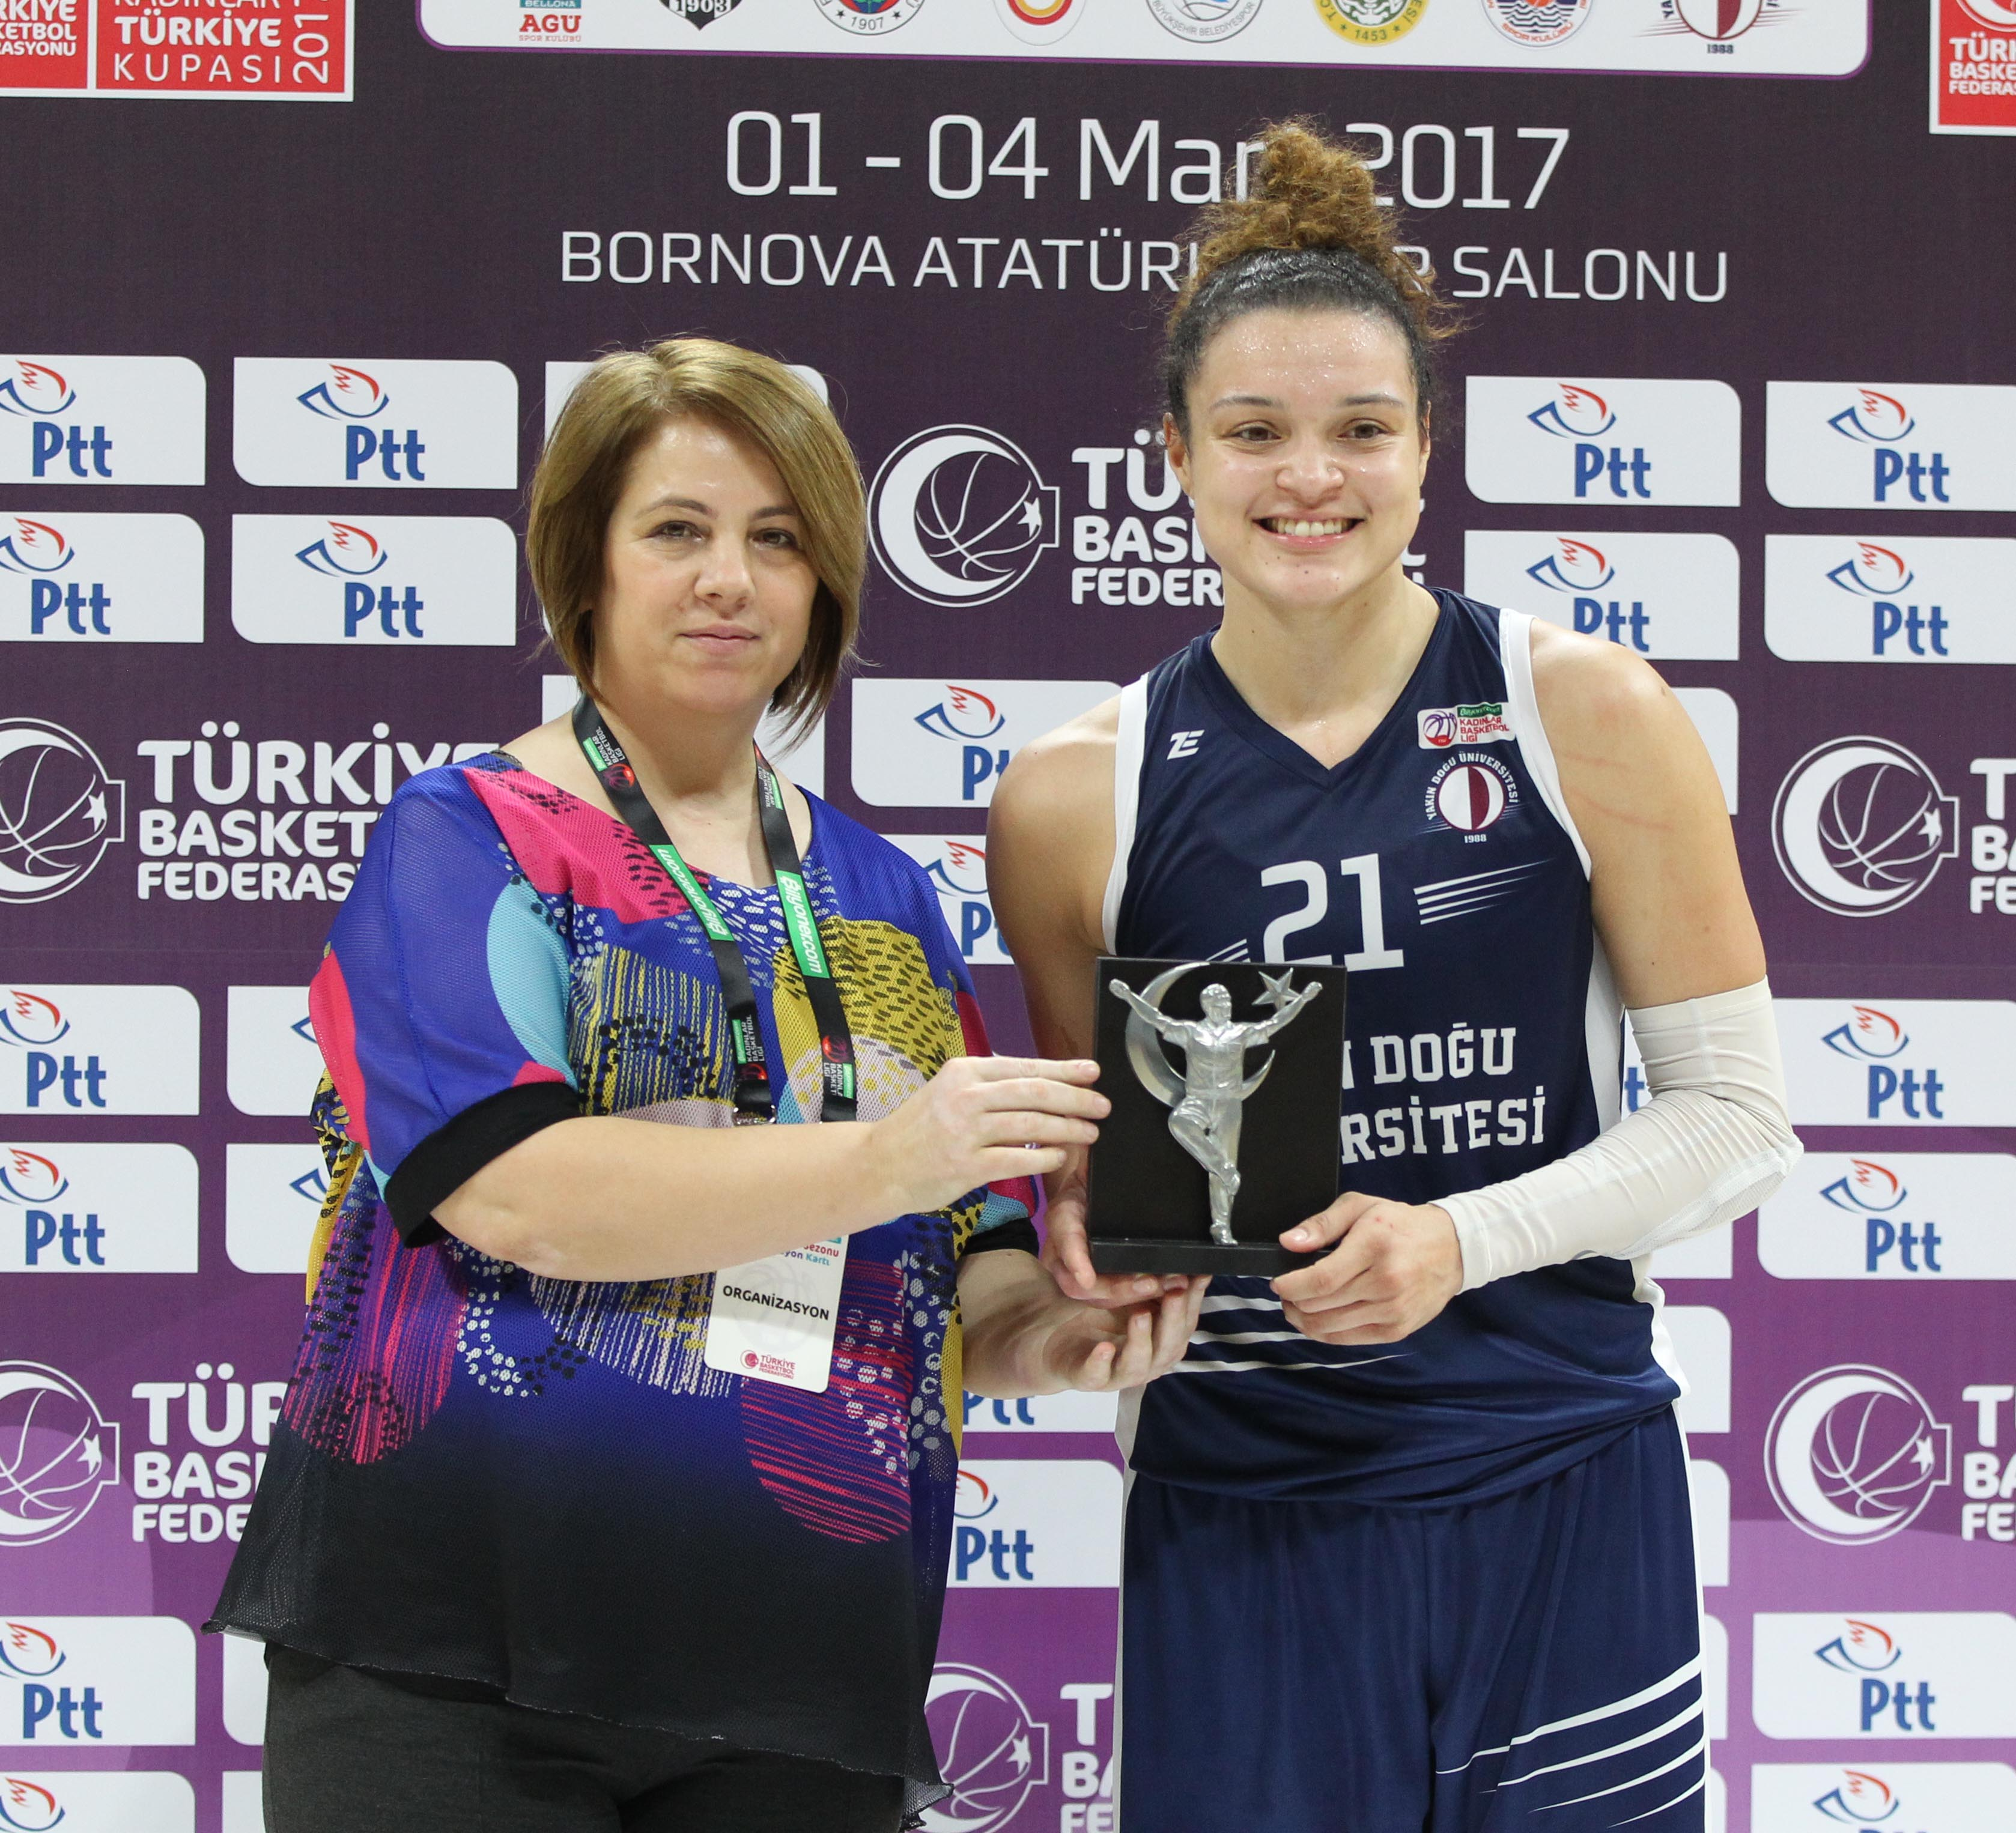 By defeating Galatasaray with a net score of 78 -62, Near East University is facing Besiktaş for Women's Turkey Cup Semi – Final